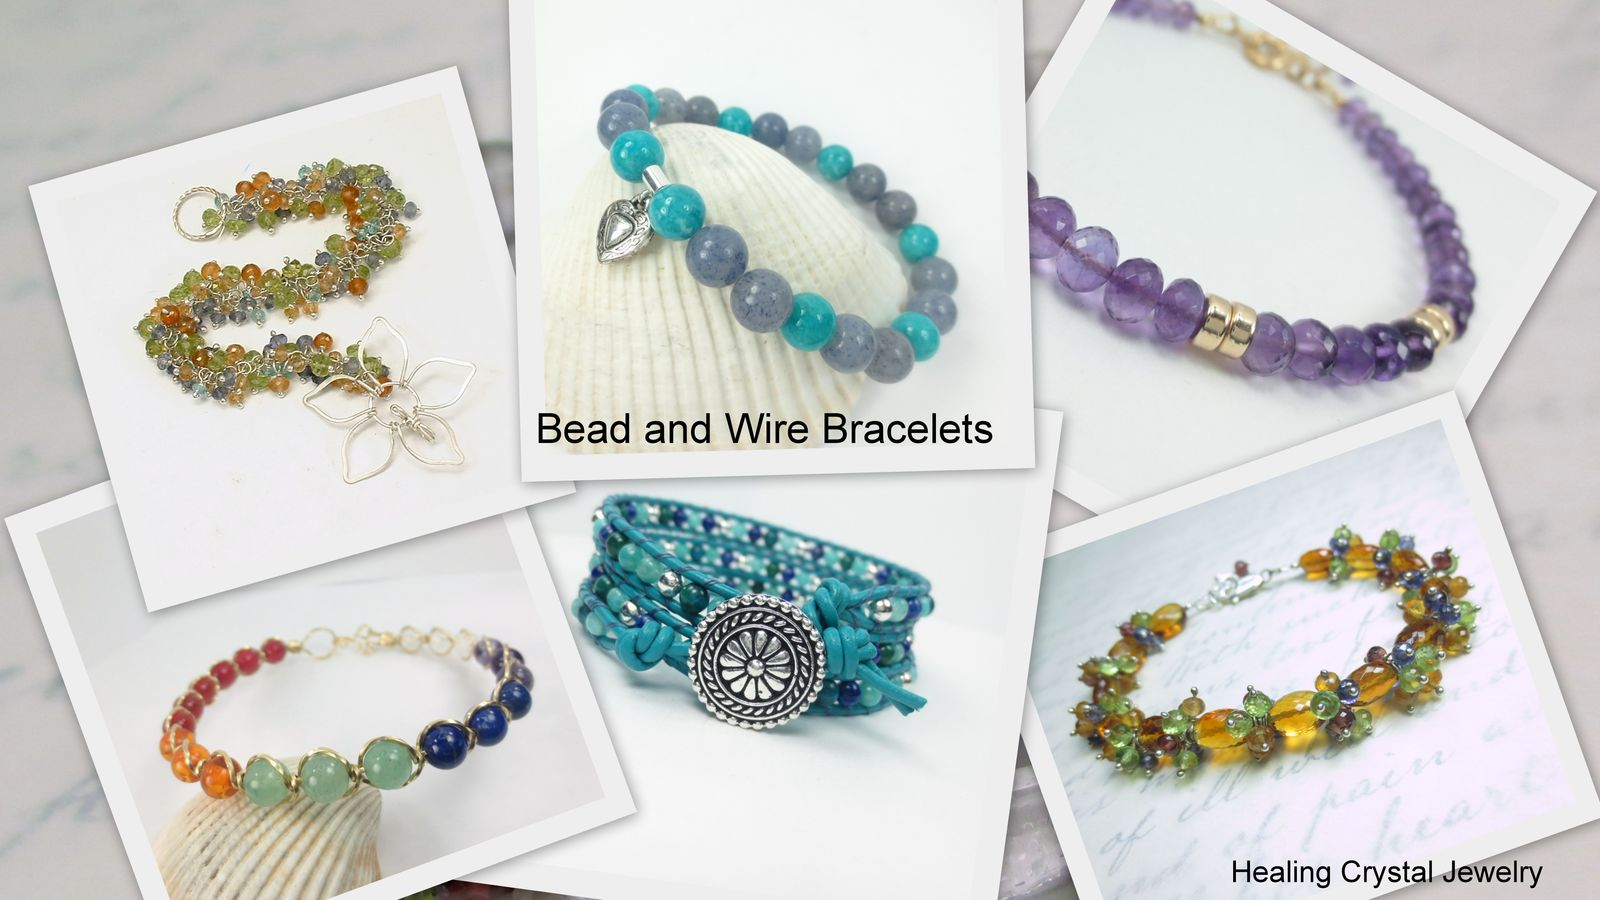 healing crystal jewelry bead and wire bracelets